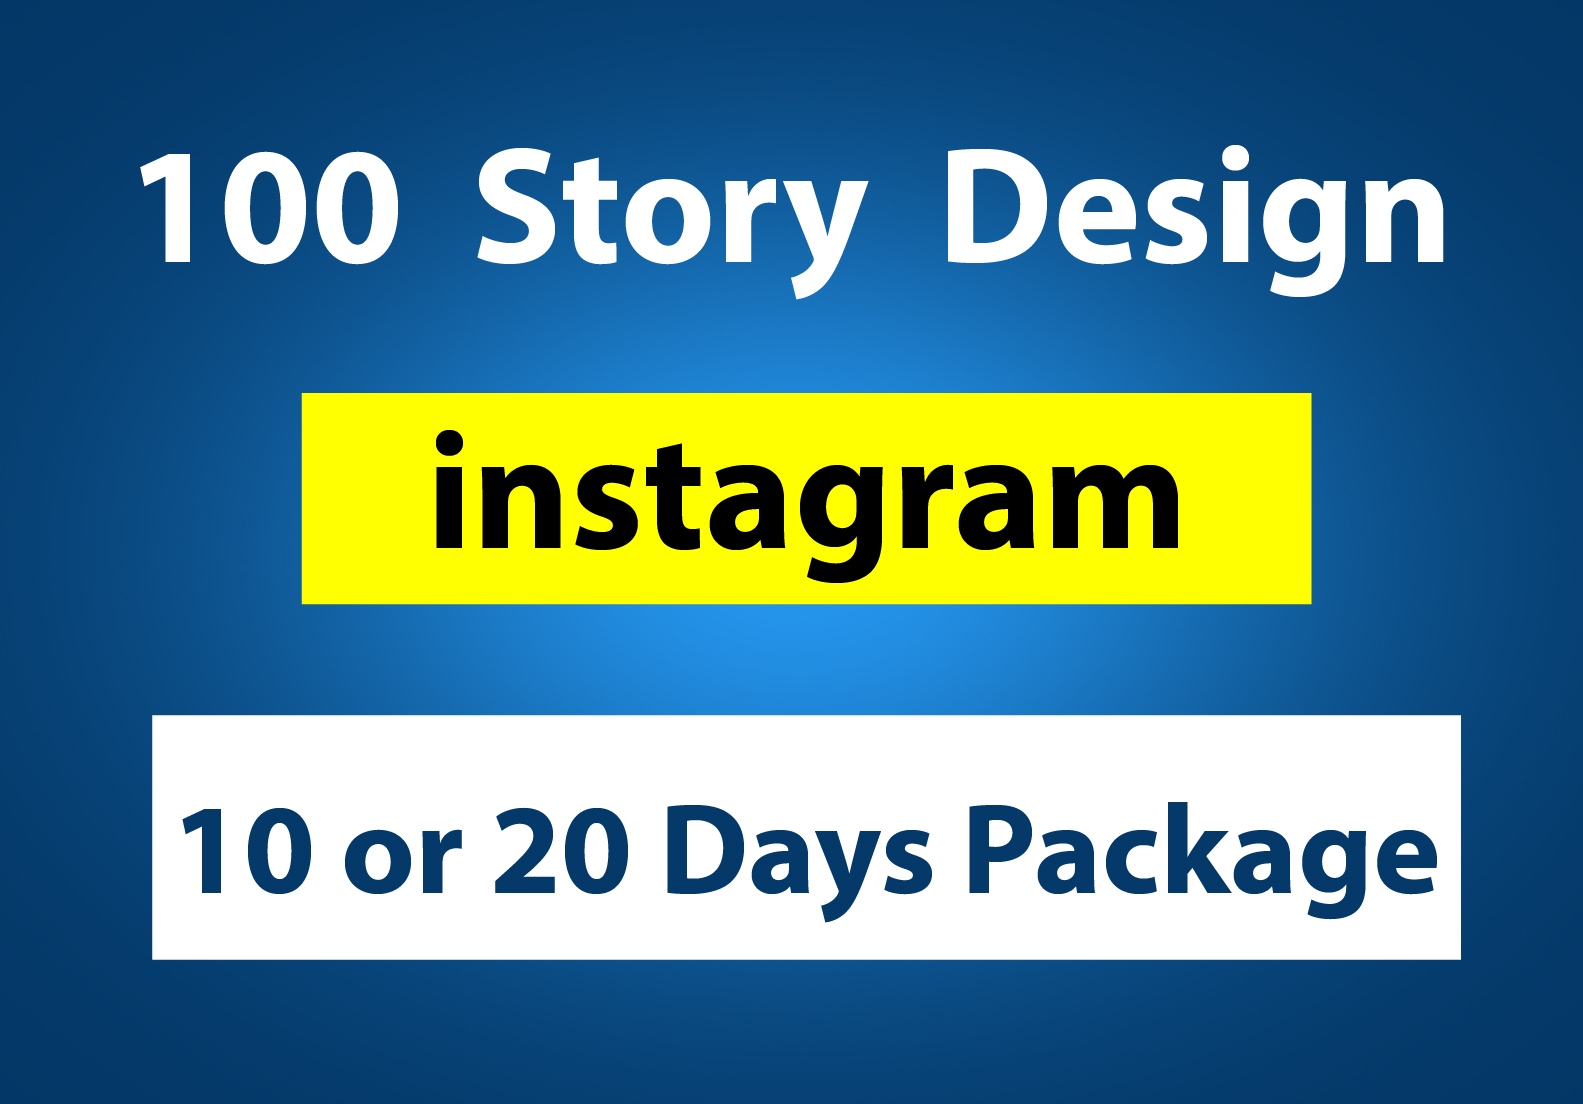 I will design instagram story design